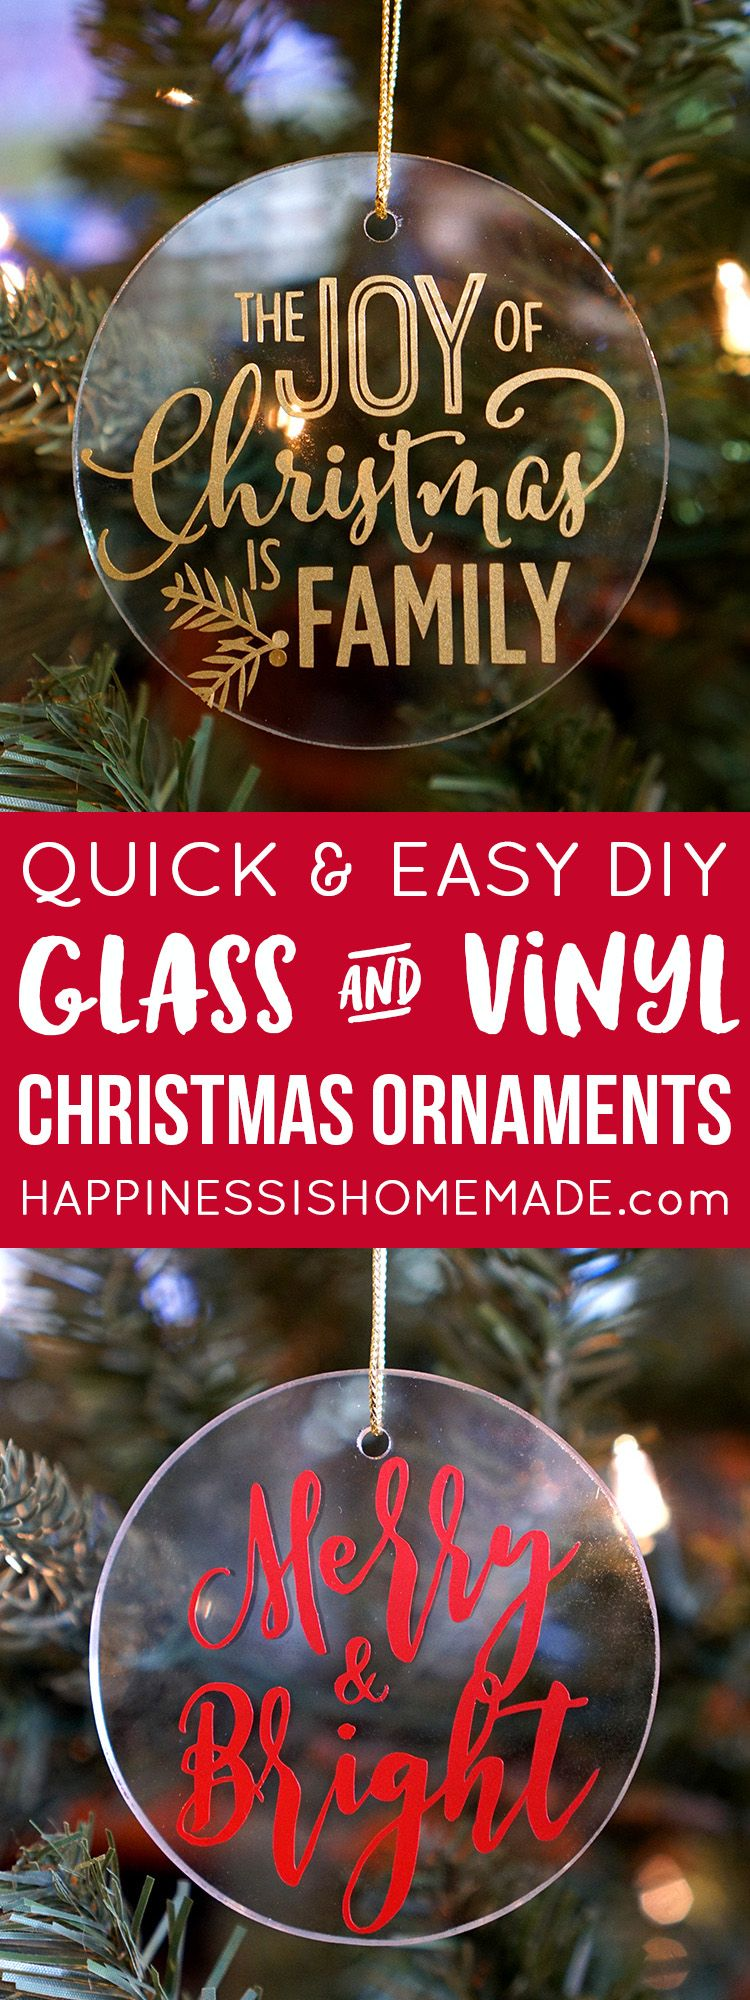 Quick And Easy Diy Glass And Vinyl Christmas Ornaments Vinyl Christmas Ornaments Vinyl Ornaments Christmas Ornaments